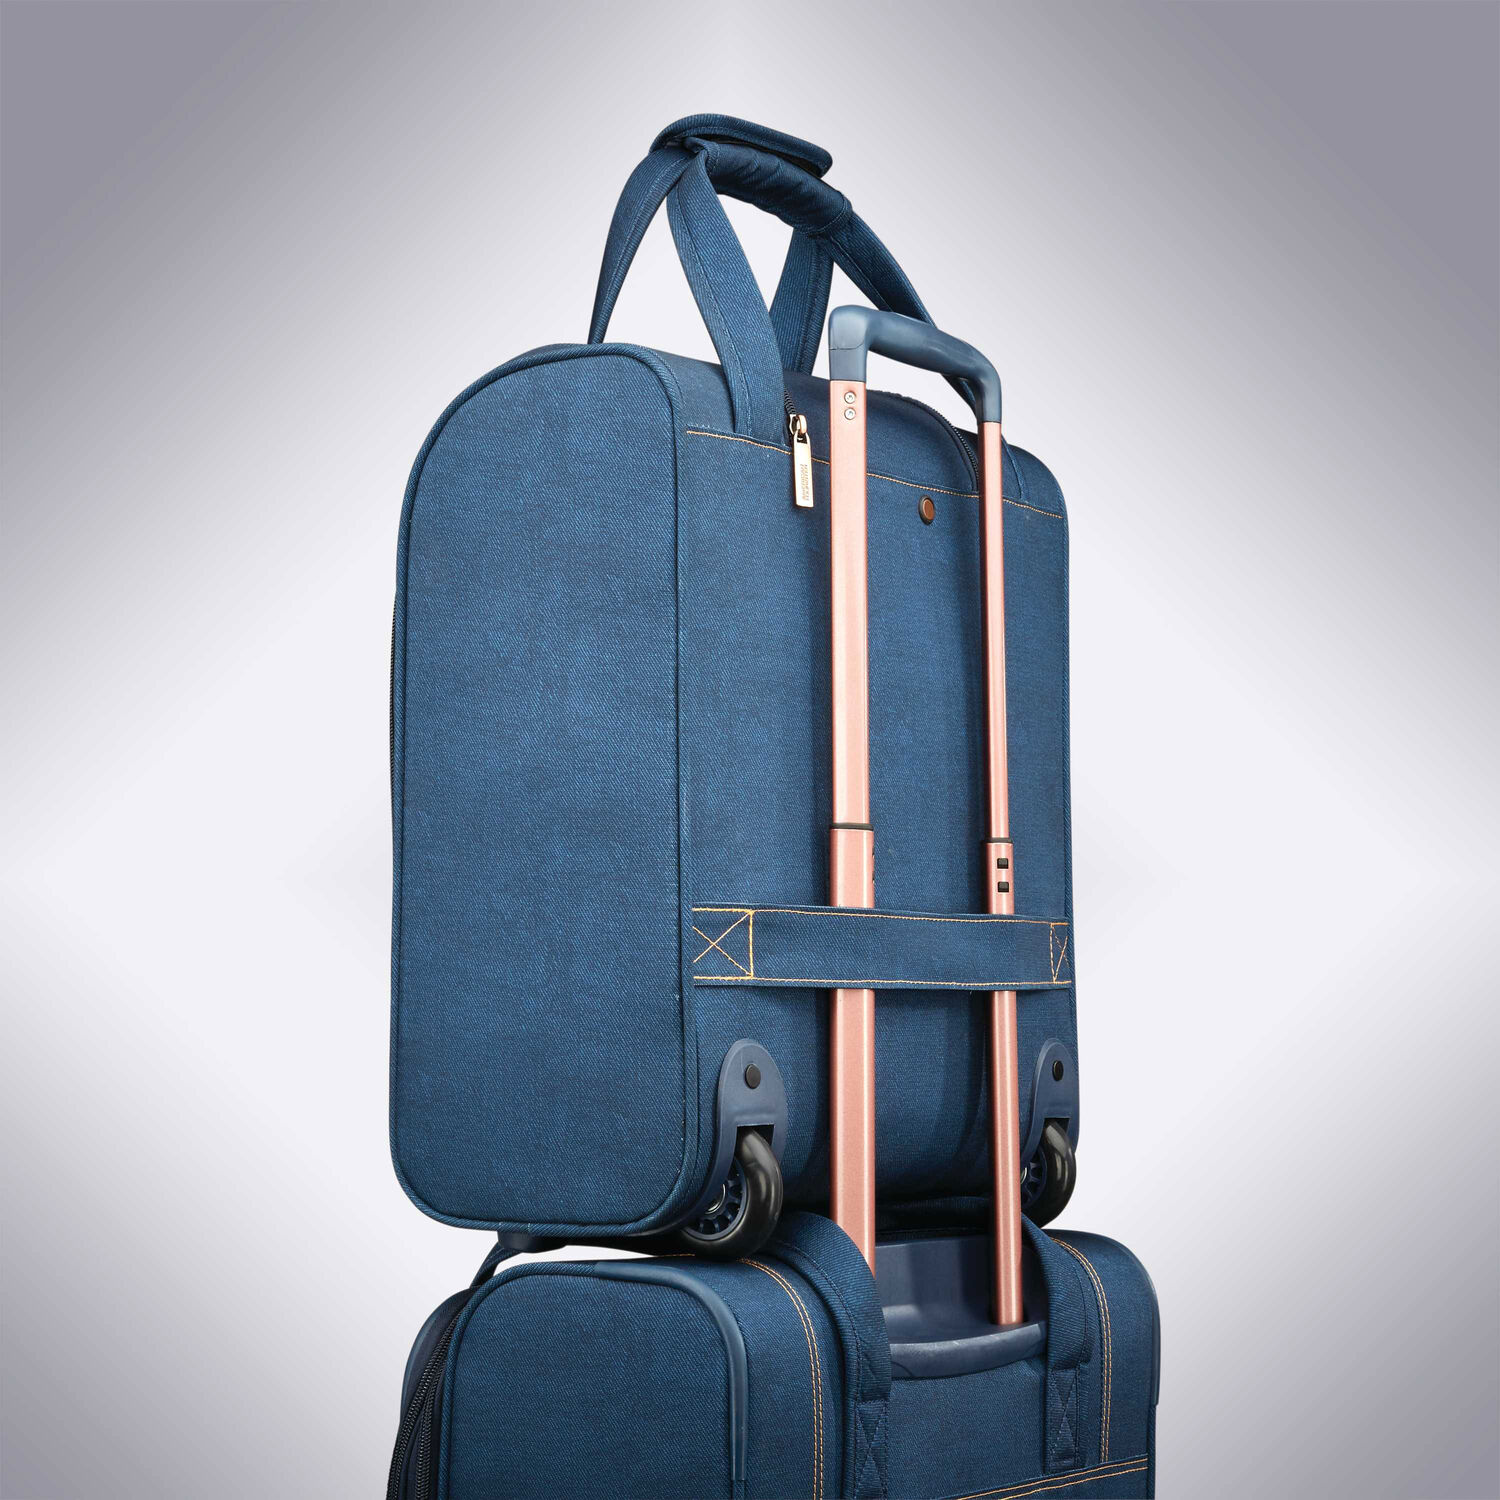 43cee85316 American Tourister Belle Voyage Rolling Tote in the color Blue Denim.